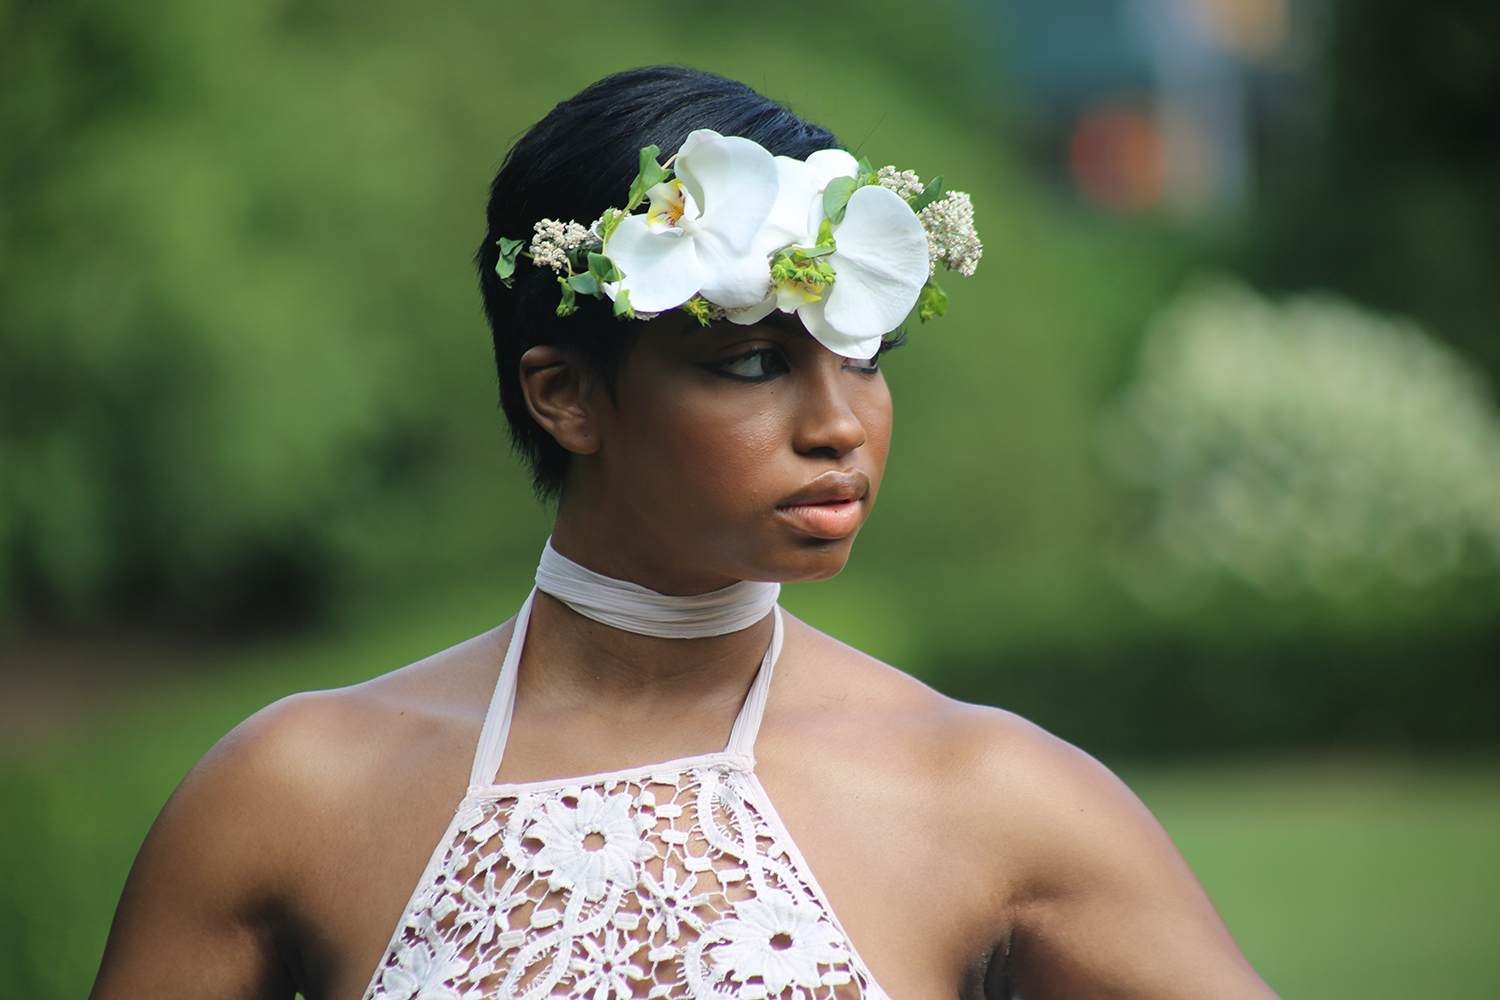 Summer flower crowns for every type of bride by stellar style events summer flower crowns for every type of bride by stellar style events izmirmasajfo